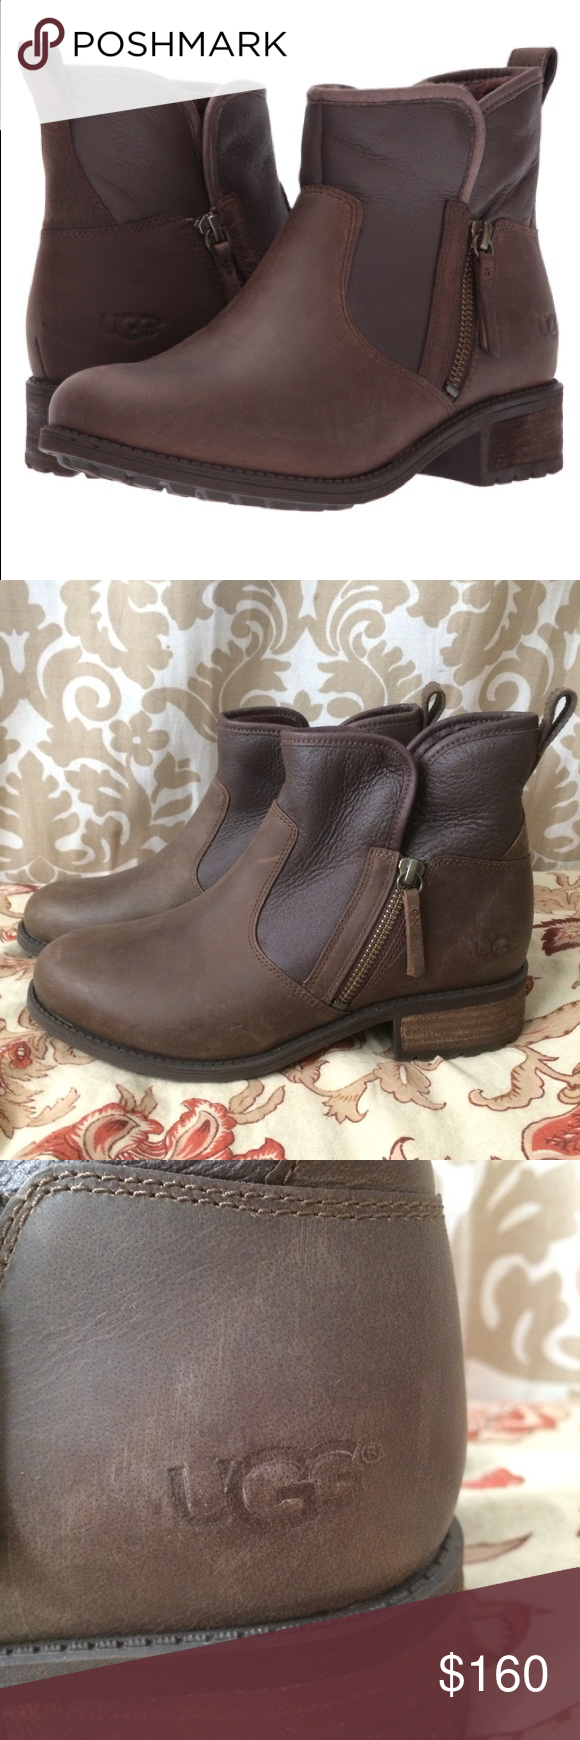 b4efc85677f New! UGG Ankle boot side zip Lavelle stout brown 7 Hot new UGG ankle ...